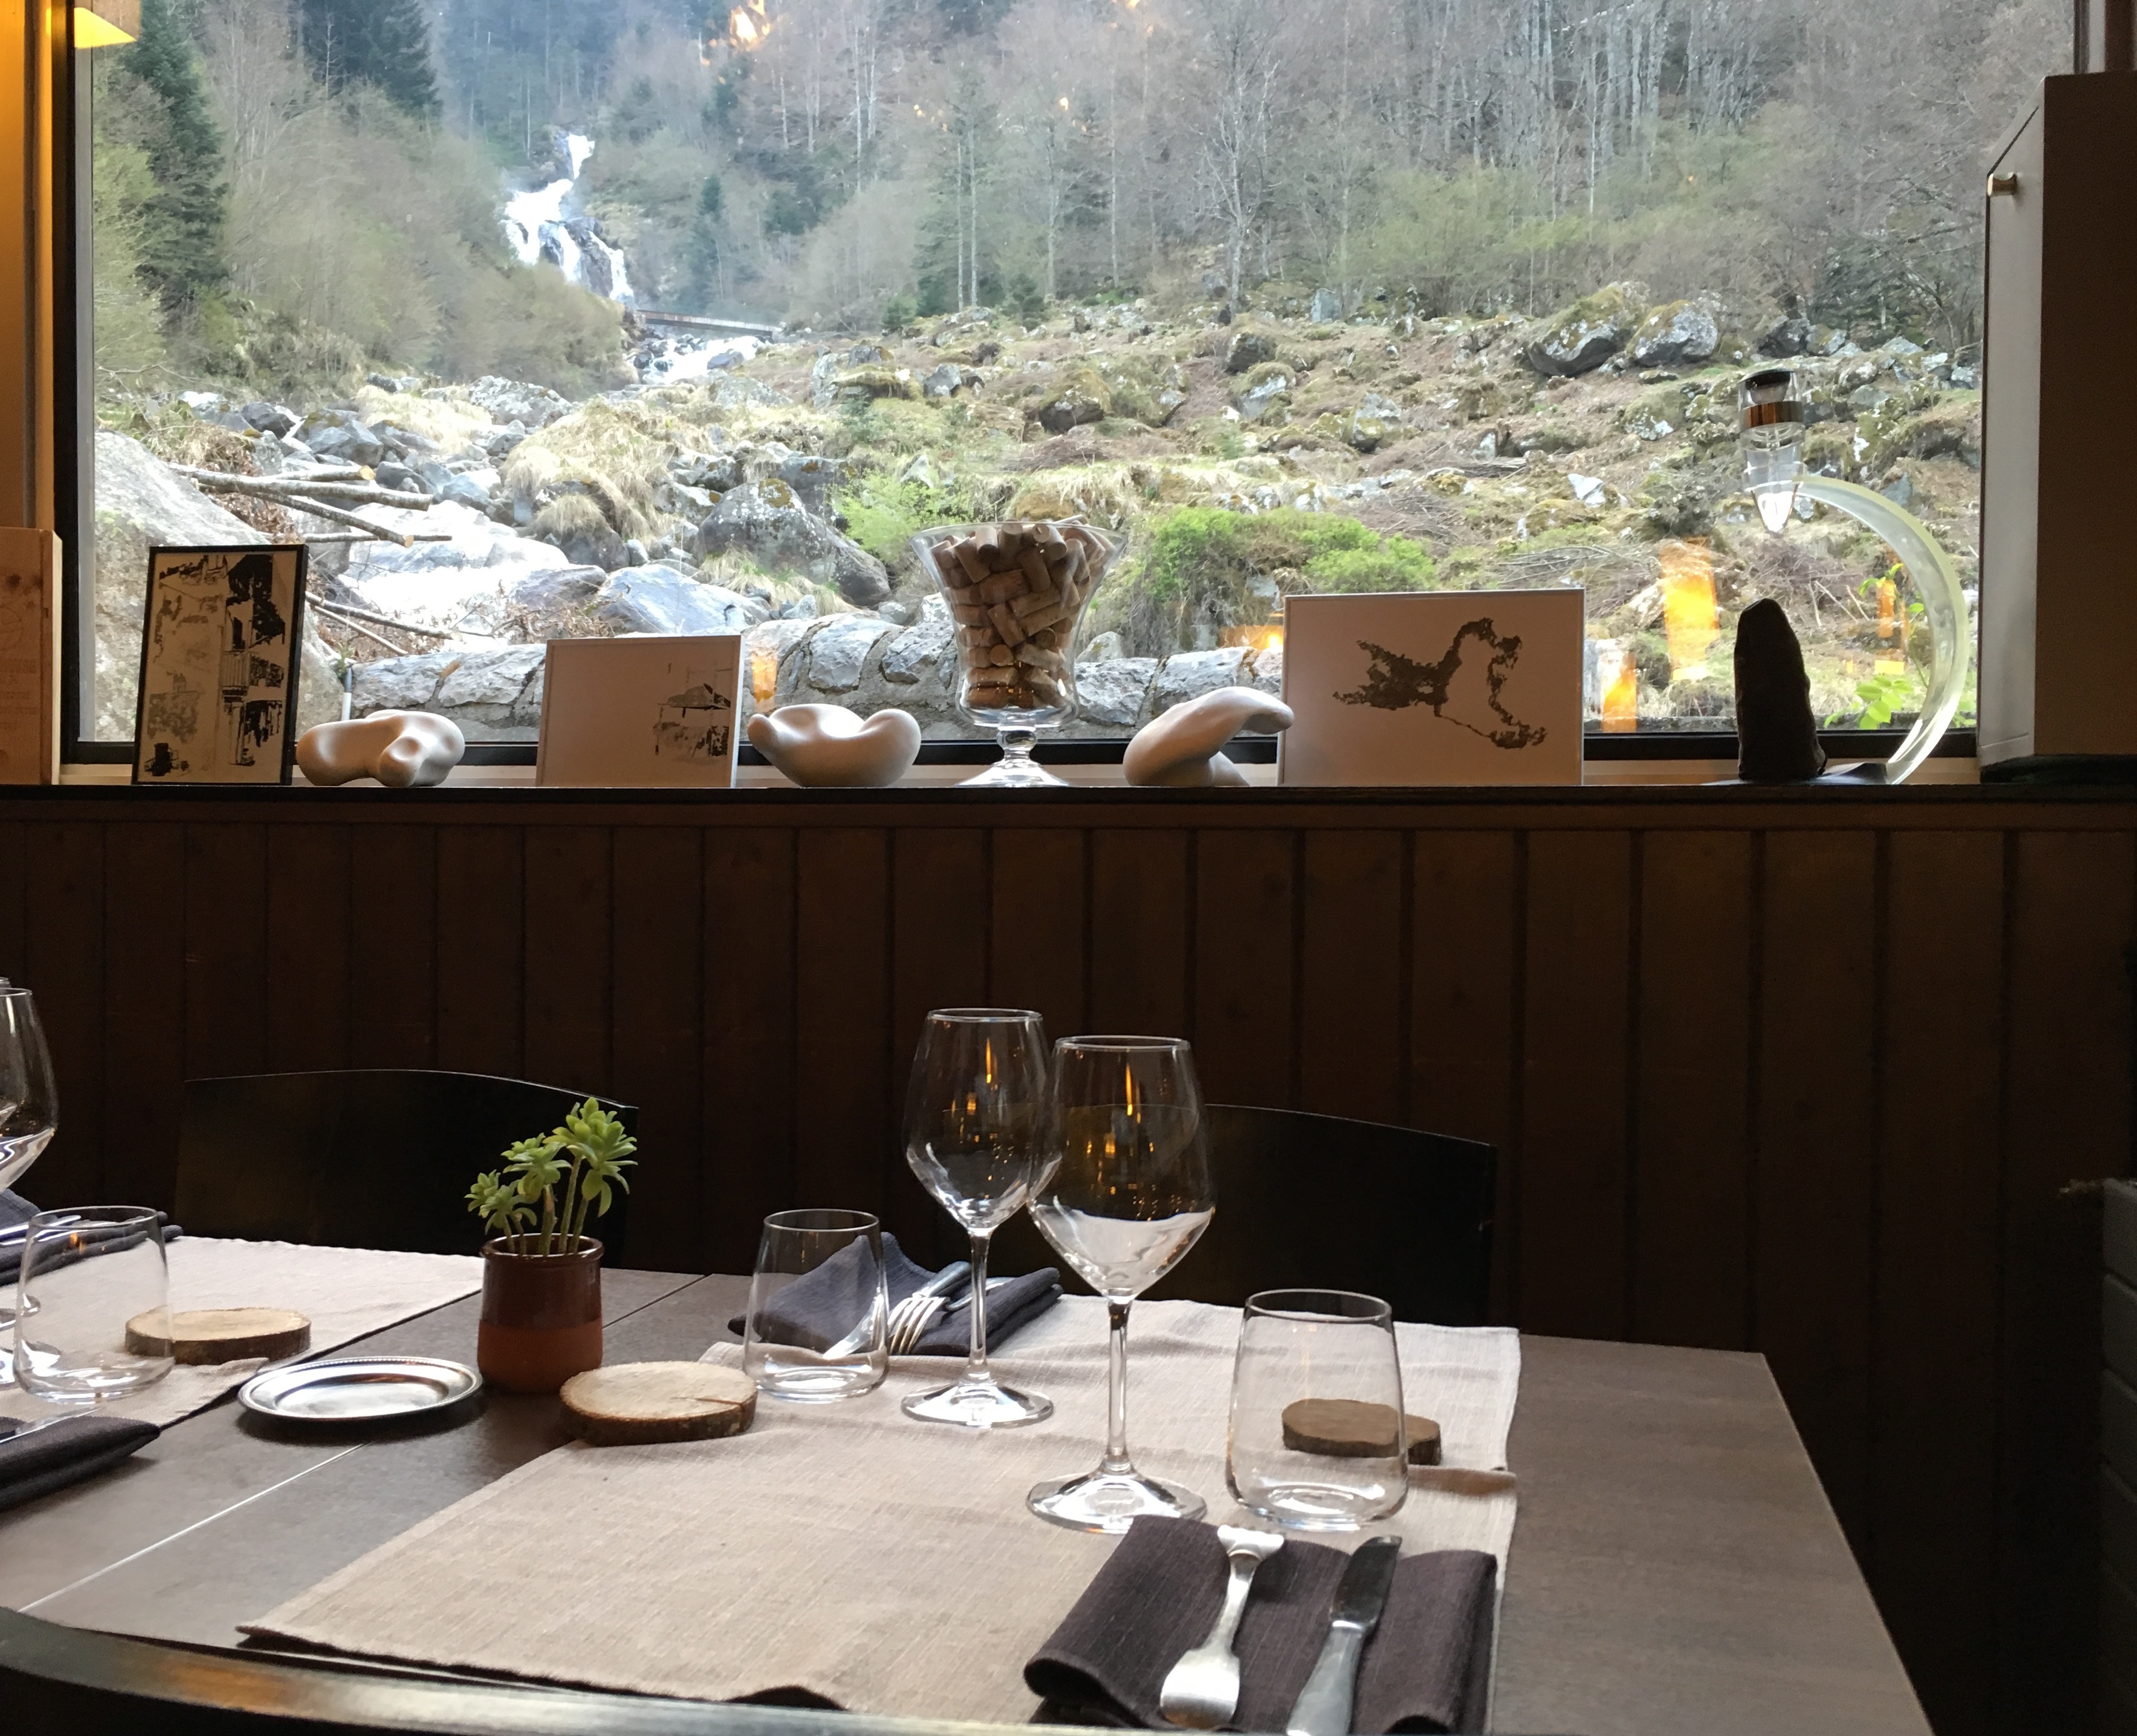 Table set with glasses and cutlery with a view out over the stream at L'abri du benques